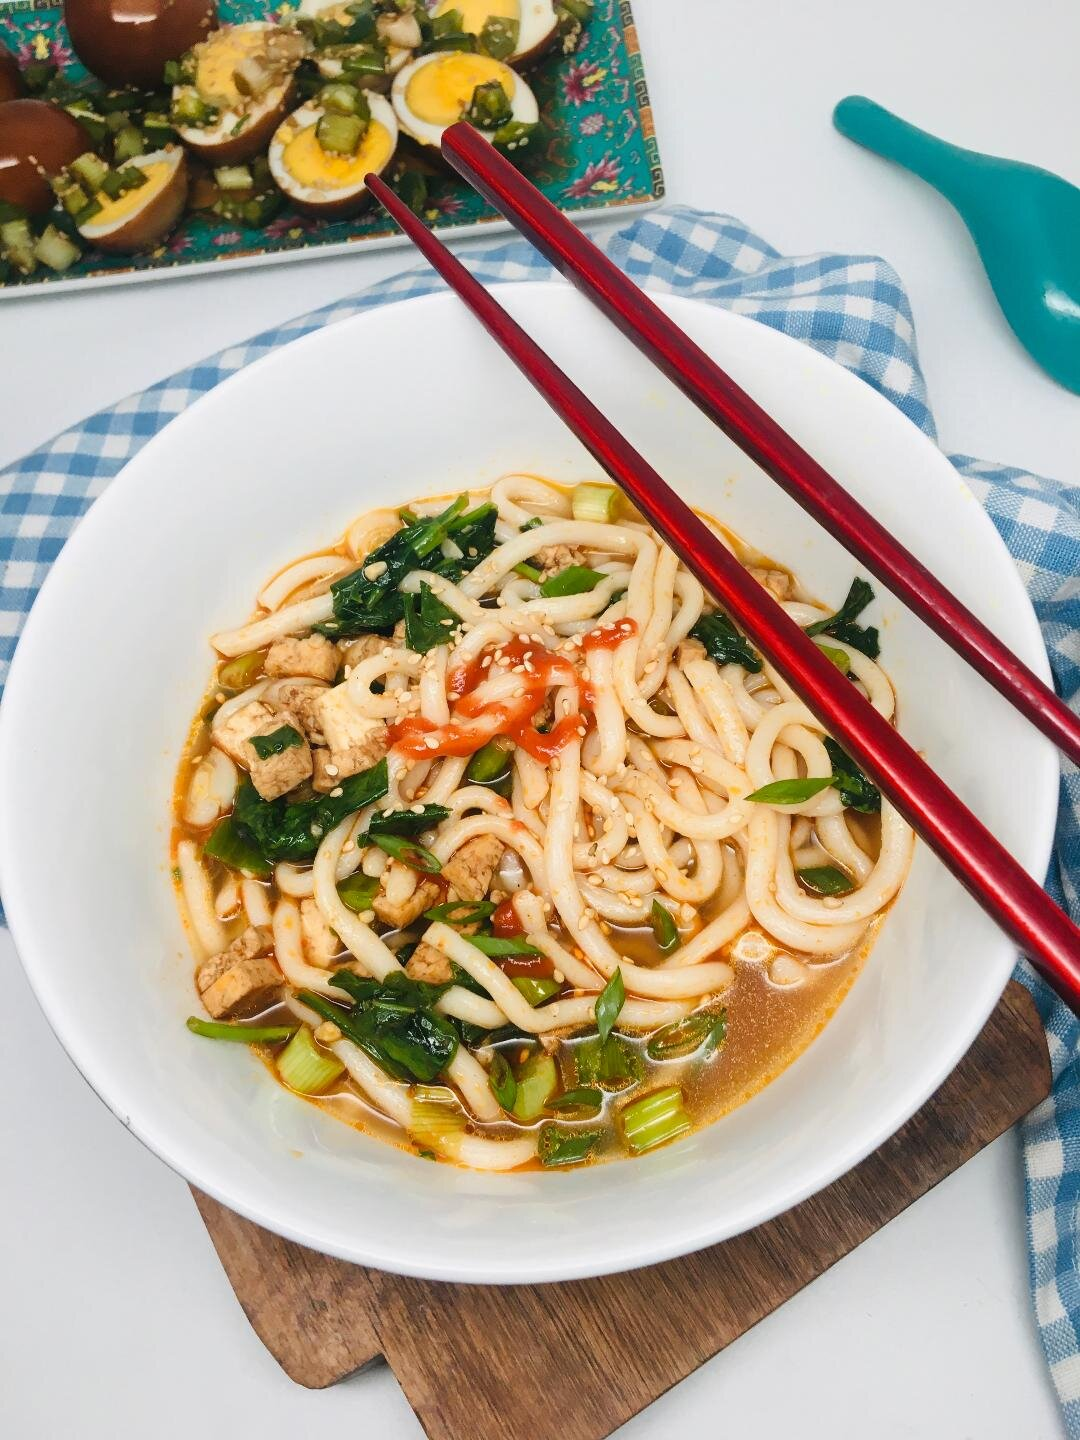 miso udon noodles with spinach and tofu